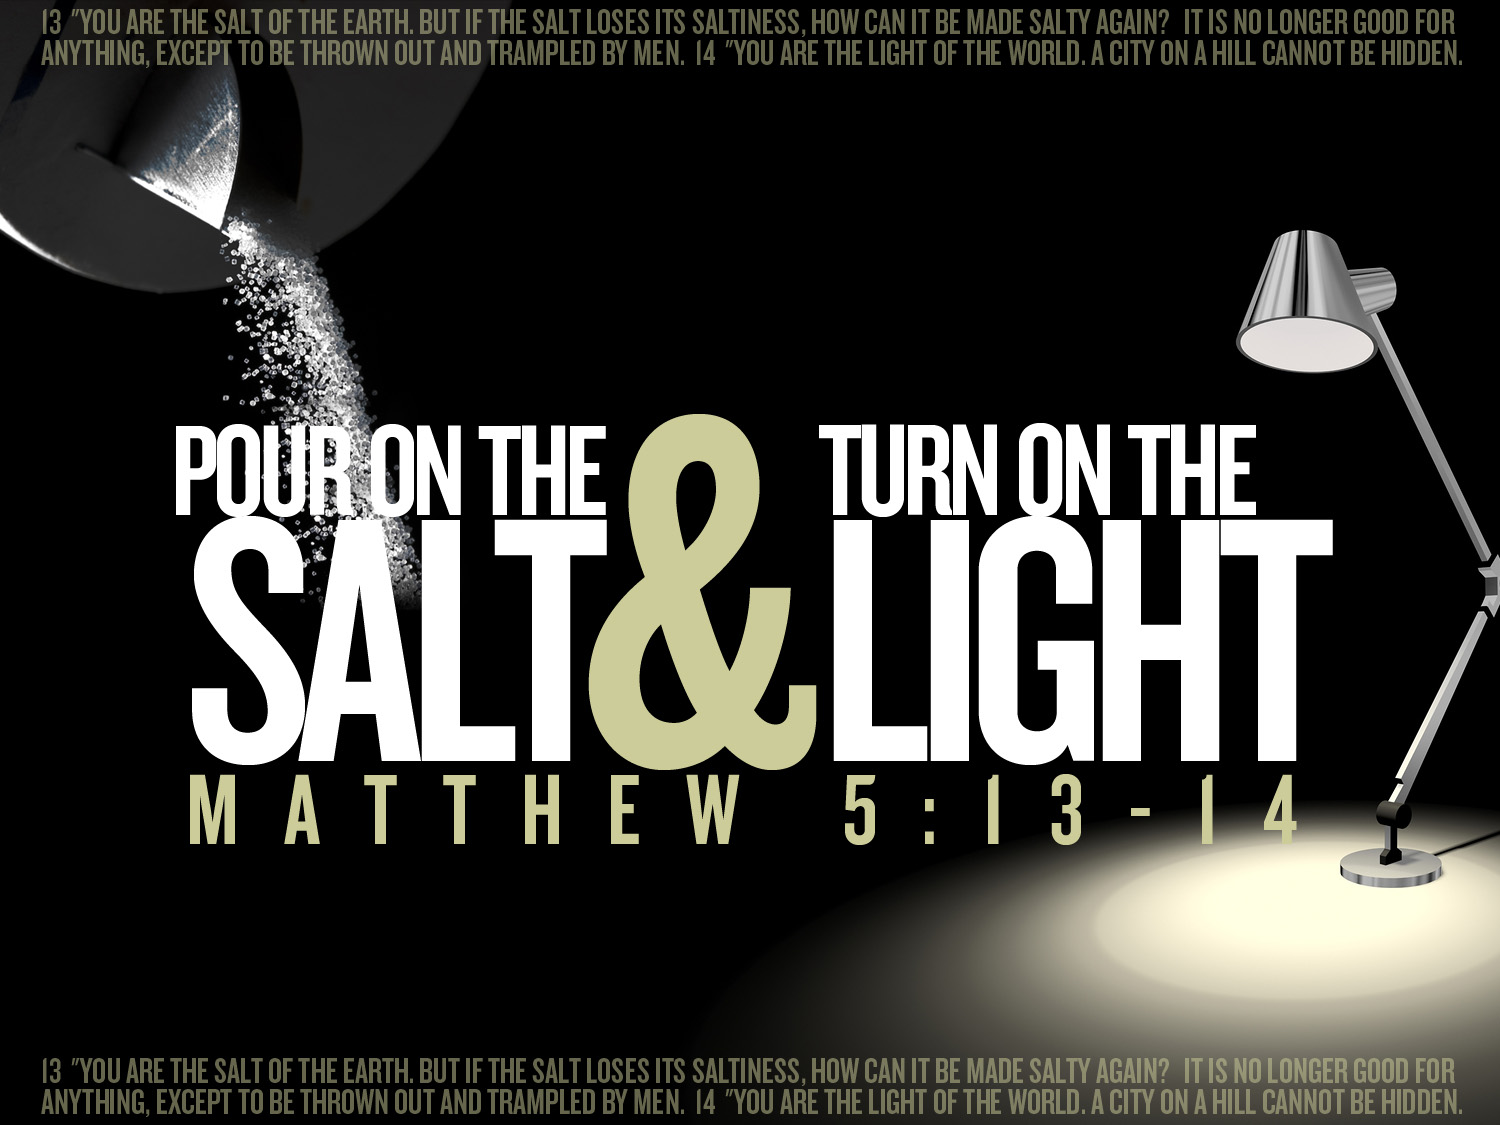 8051165834 likewise Day 21 Battle For The Crown Prayer Points 2011 also Letyourlightshine additionally Slha furthermore Lighthouse sunset seagulls bible verse poster 228755932566359716. on your light shine scripture